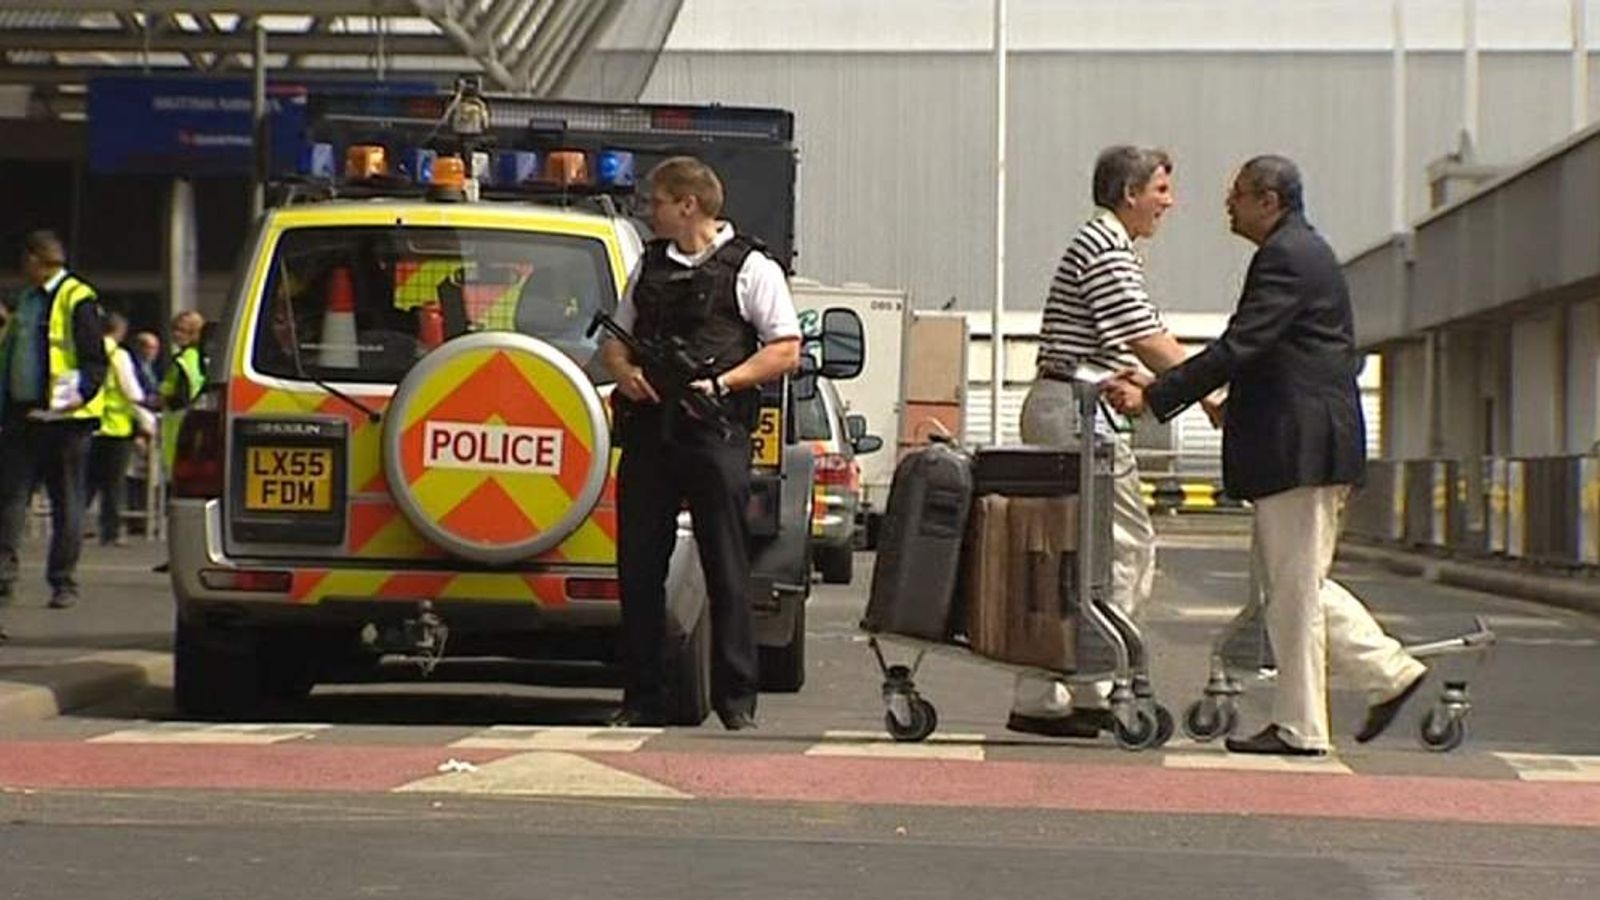 Police at a UK airport